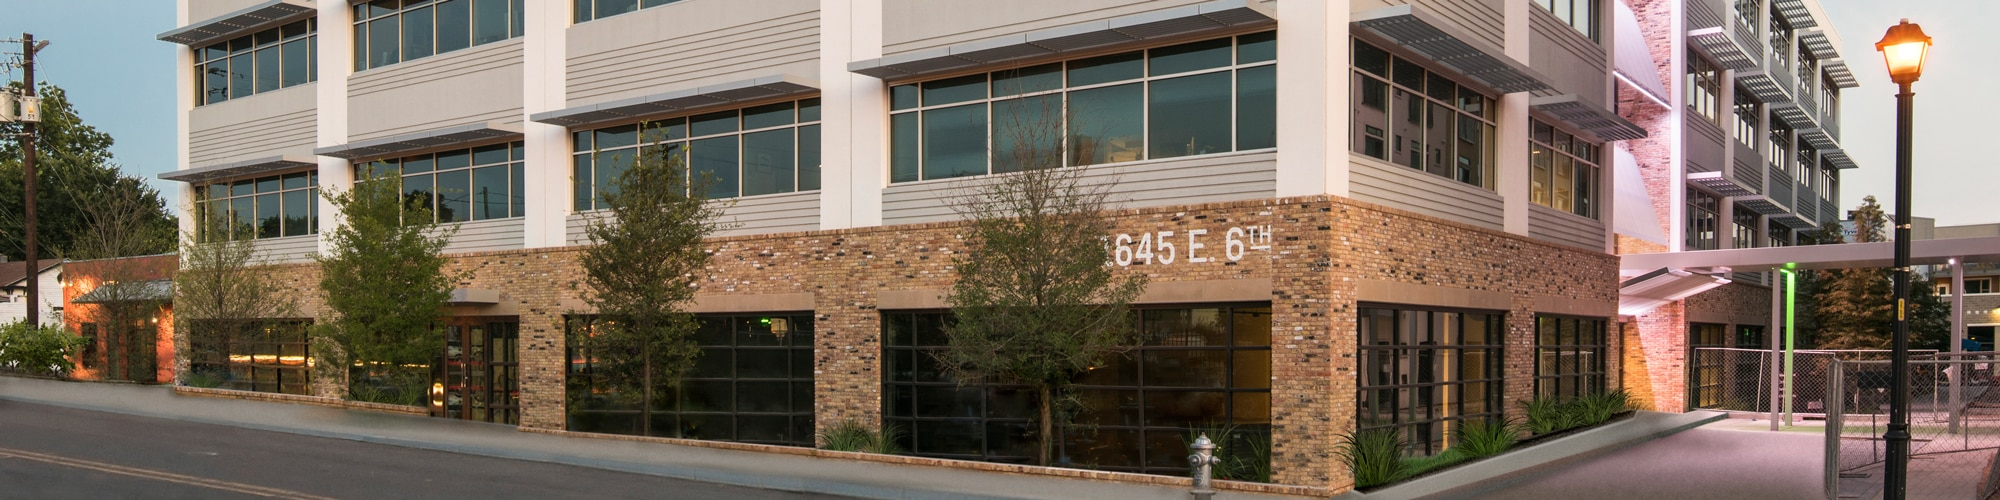 Eastside Village | 645 E. 6th Street in Austin, Texas